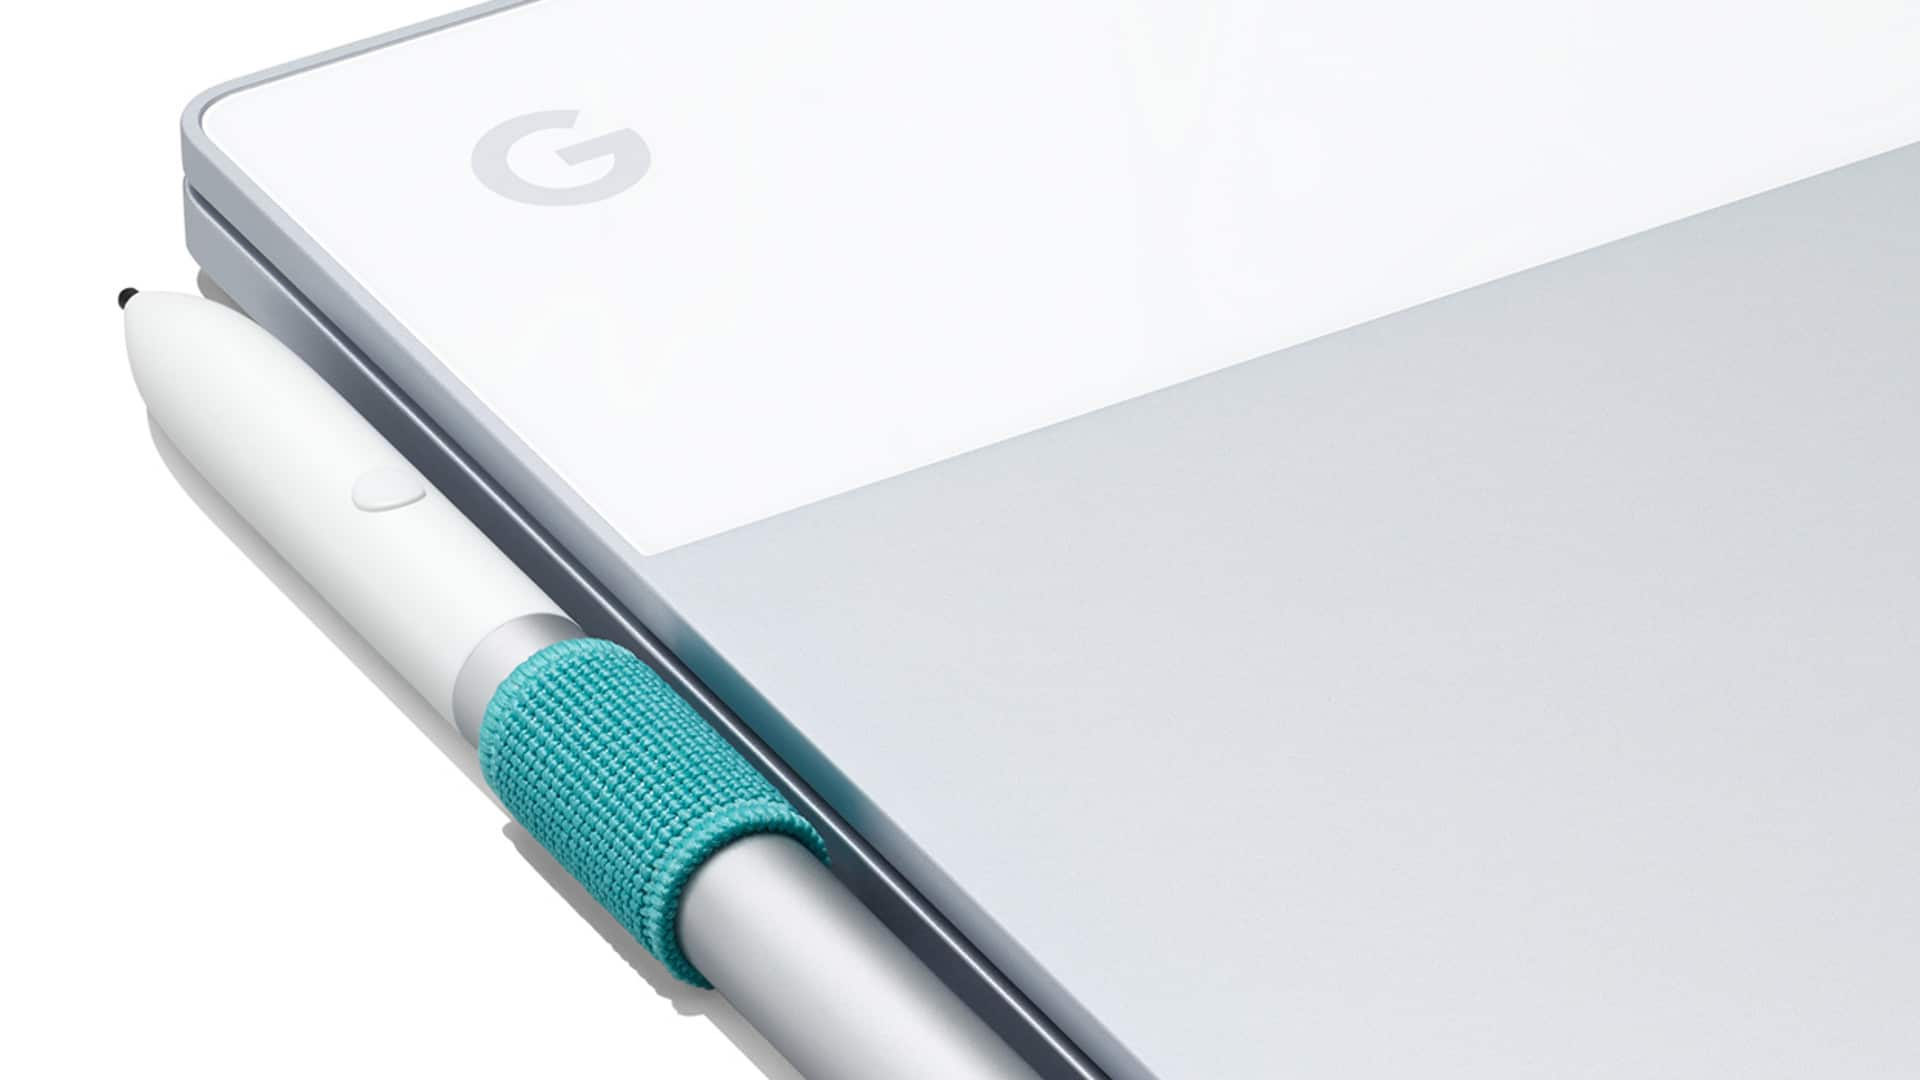 Google Pixelbook Pen Loop